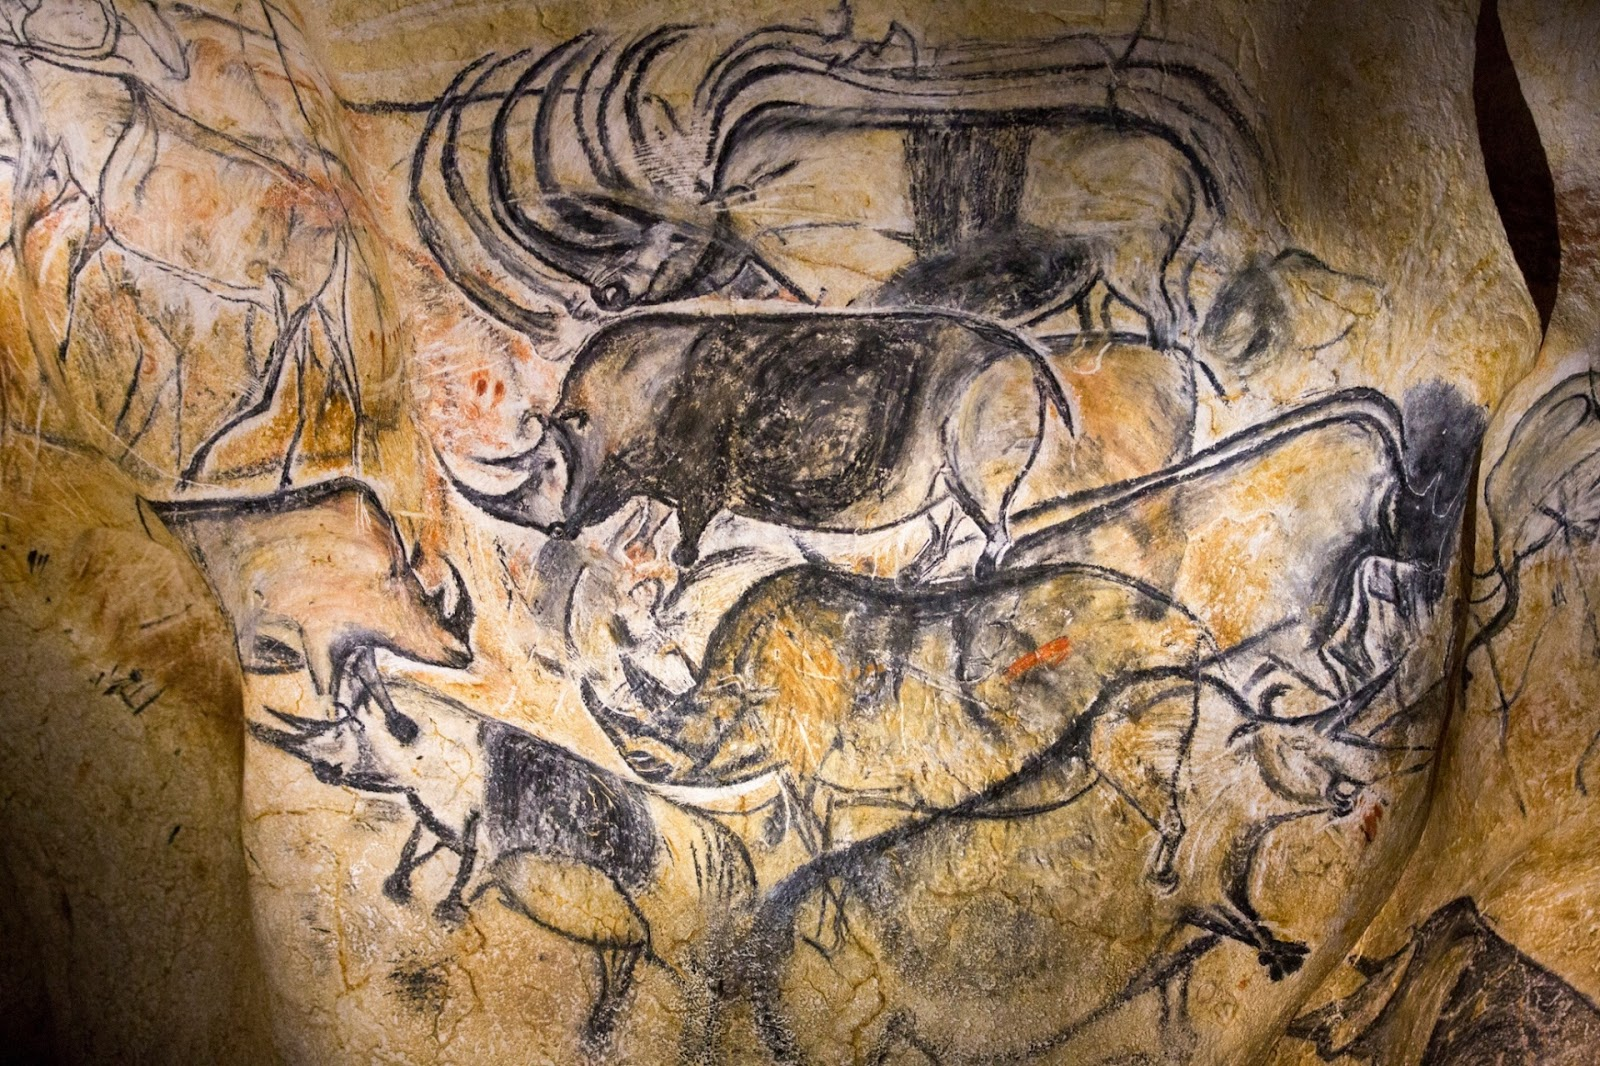 Photograph, Robert Pratta: A replica of pre-historic drawings showing animals is seen on a wall during a press visit at the site of the Cavern of Pont-d'Arc project in Vallon Pont d'Arc April 8, 2015.